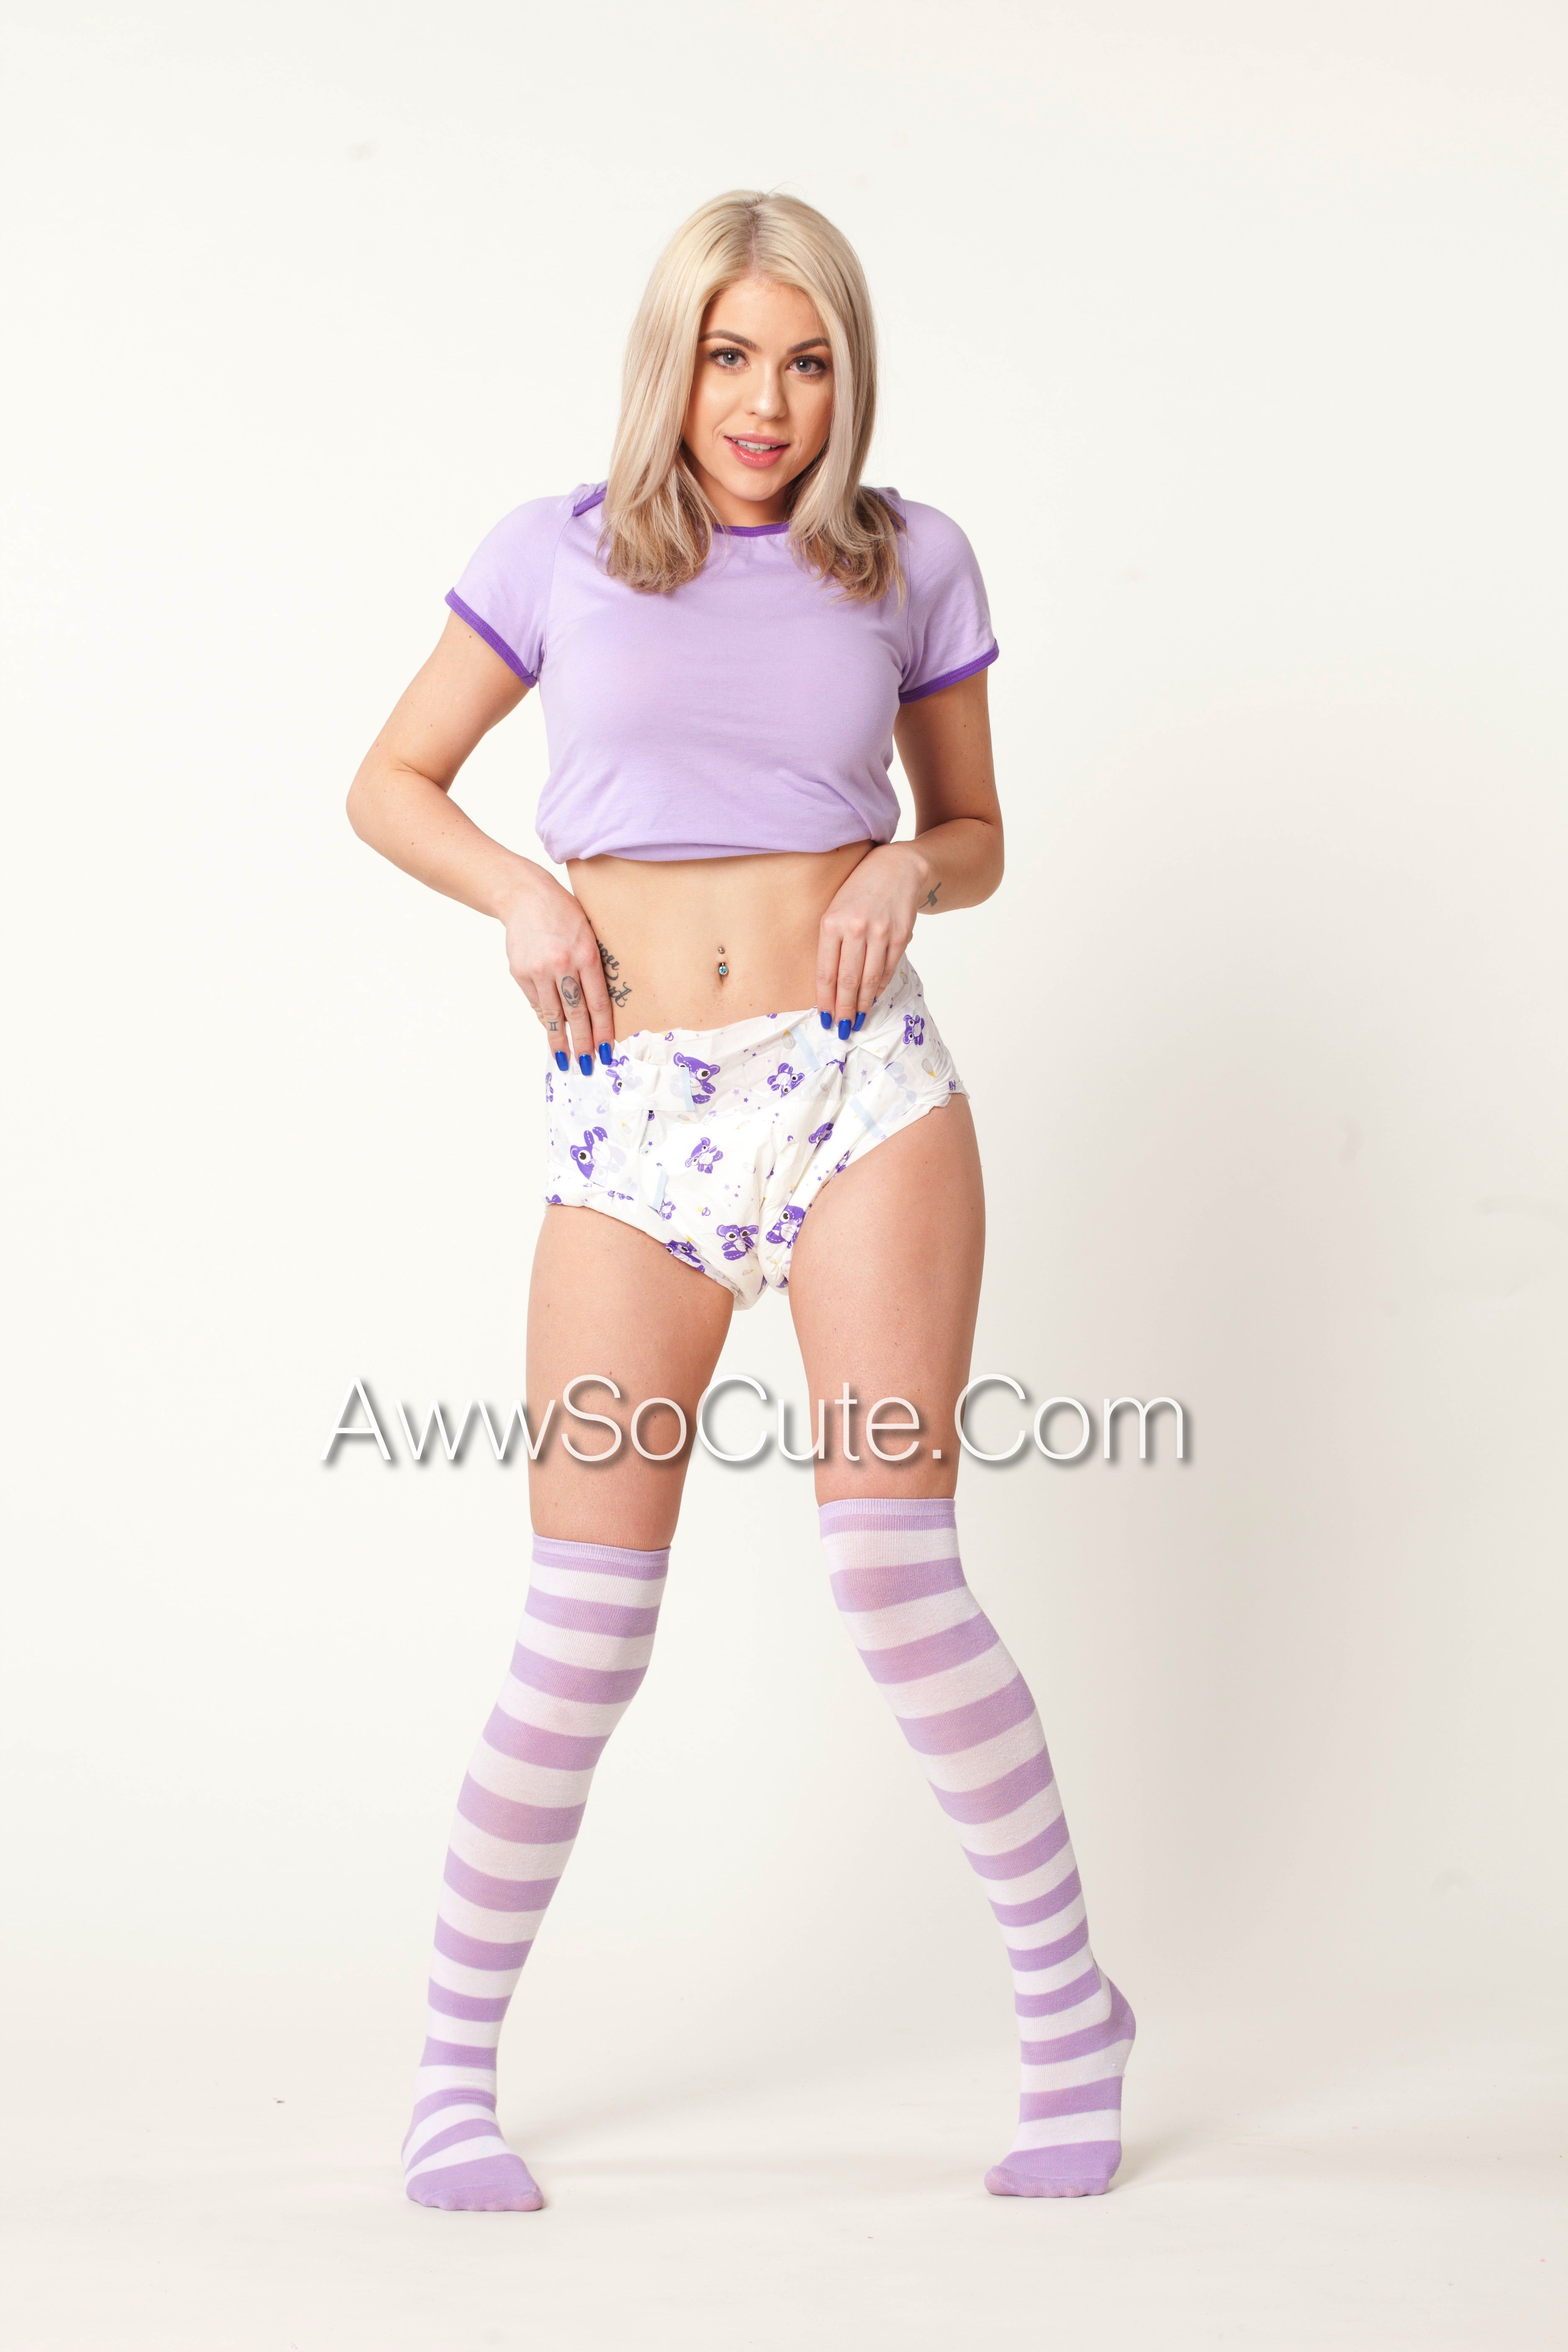 Baby adultbabysource pic girl punish adult diaper